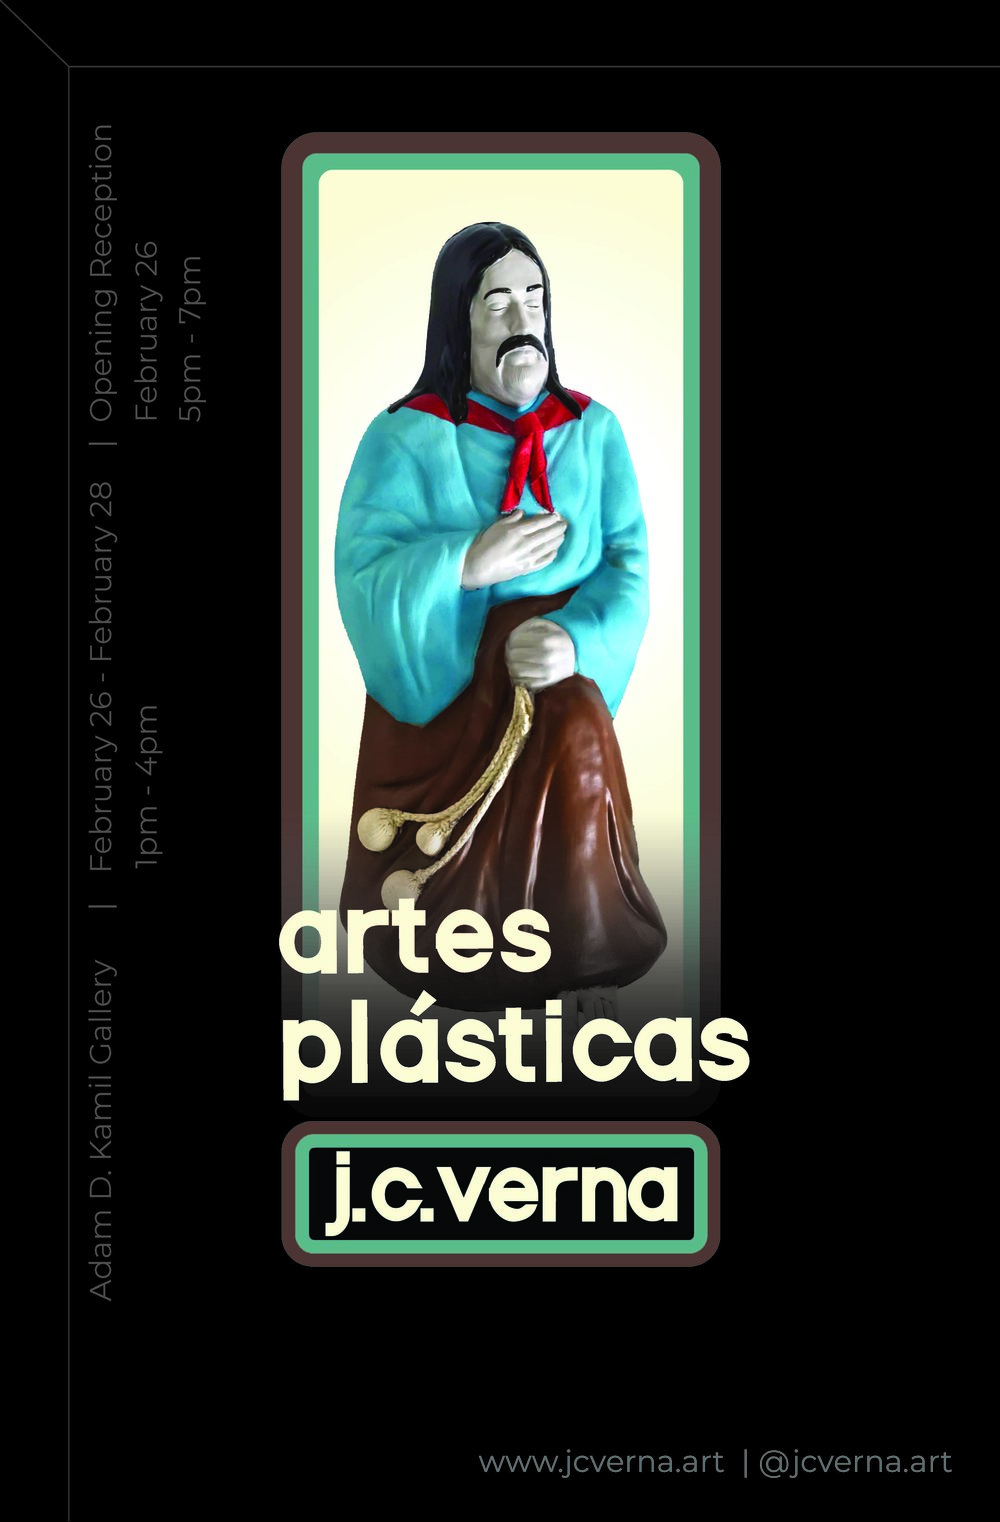 Artes Plásticas - February 26 - February 281pm - 4pmAdam D. Kamil Gallery9500 Gilman Dr, La Jolla, CA 92093Free and open to the publicOpening Reception: February 26th, 5pm - 7pm